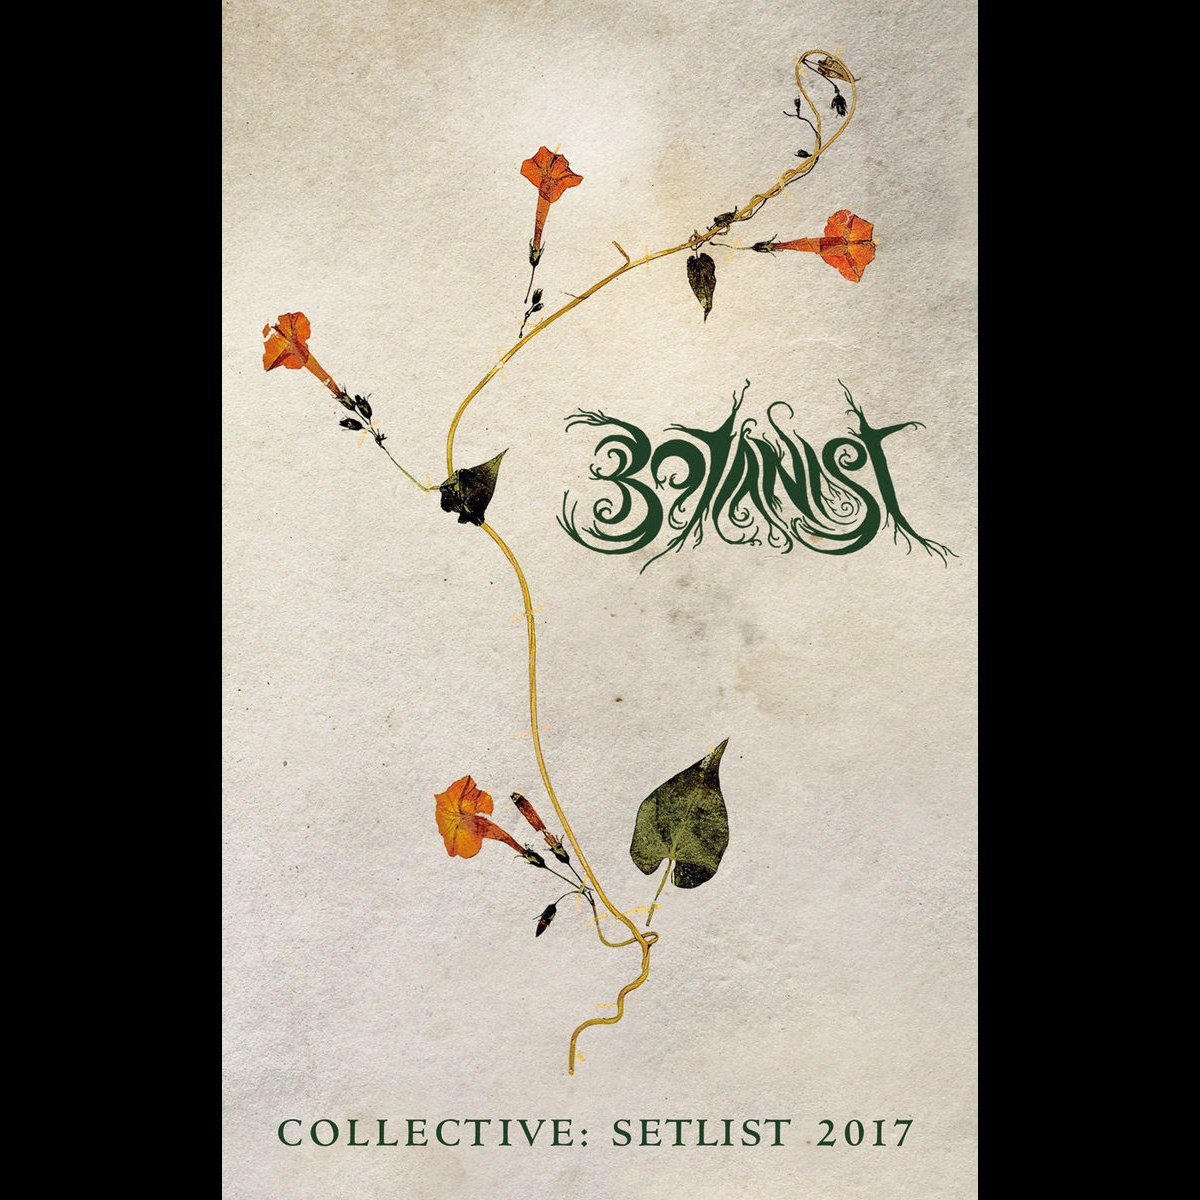 Review for Botanist - Collective: Setlist 2017